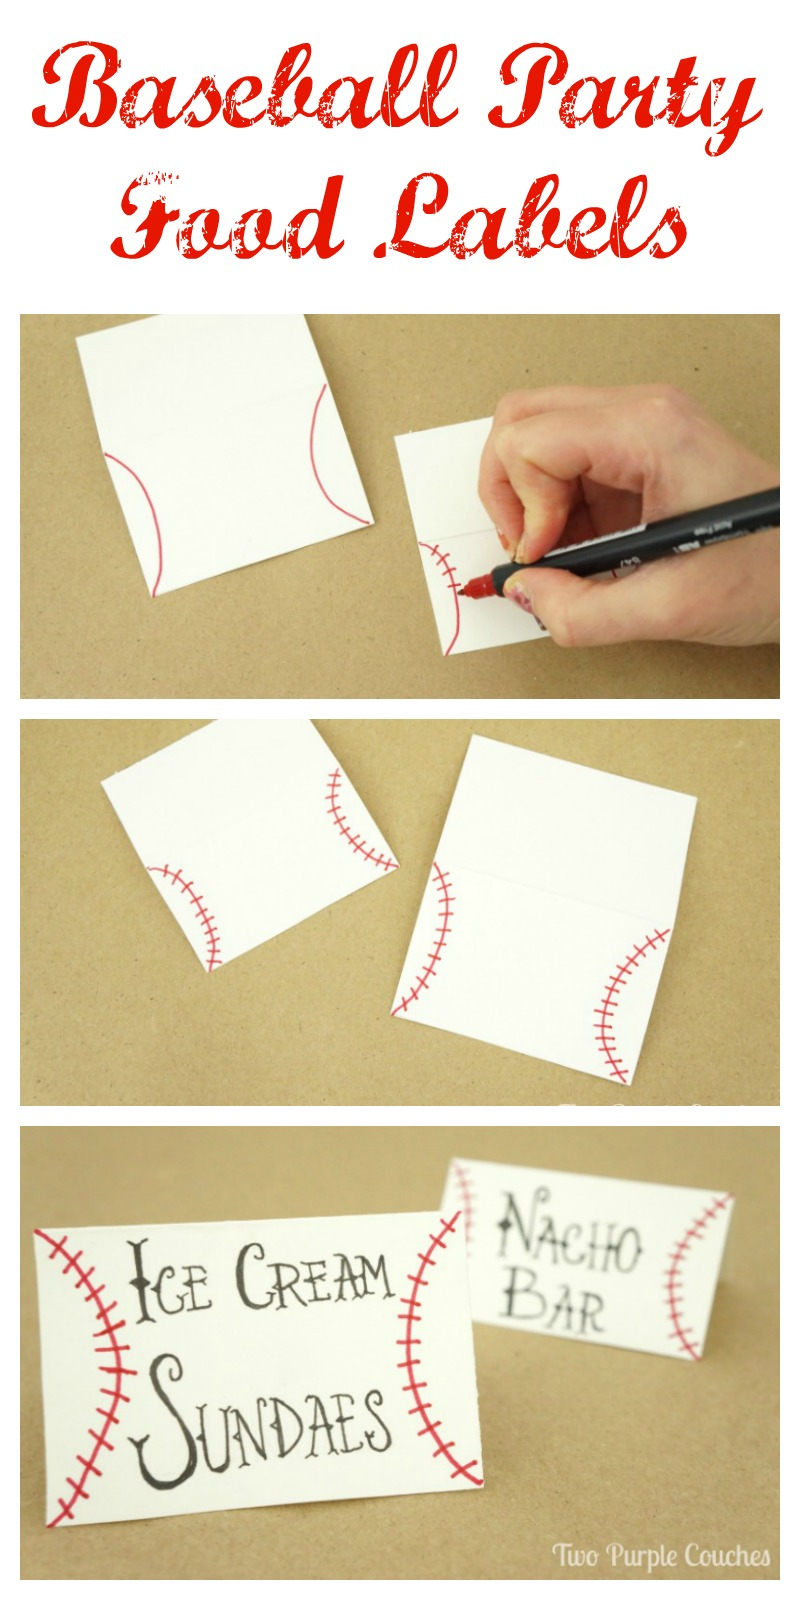 Easy step-by-step tutorial on how to make baseball food labels